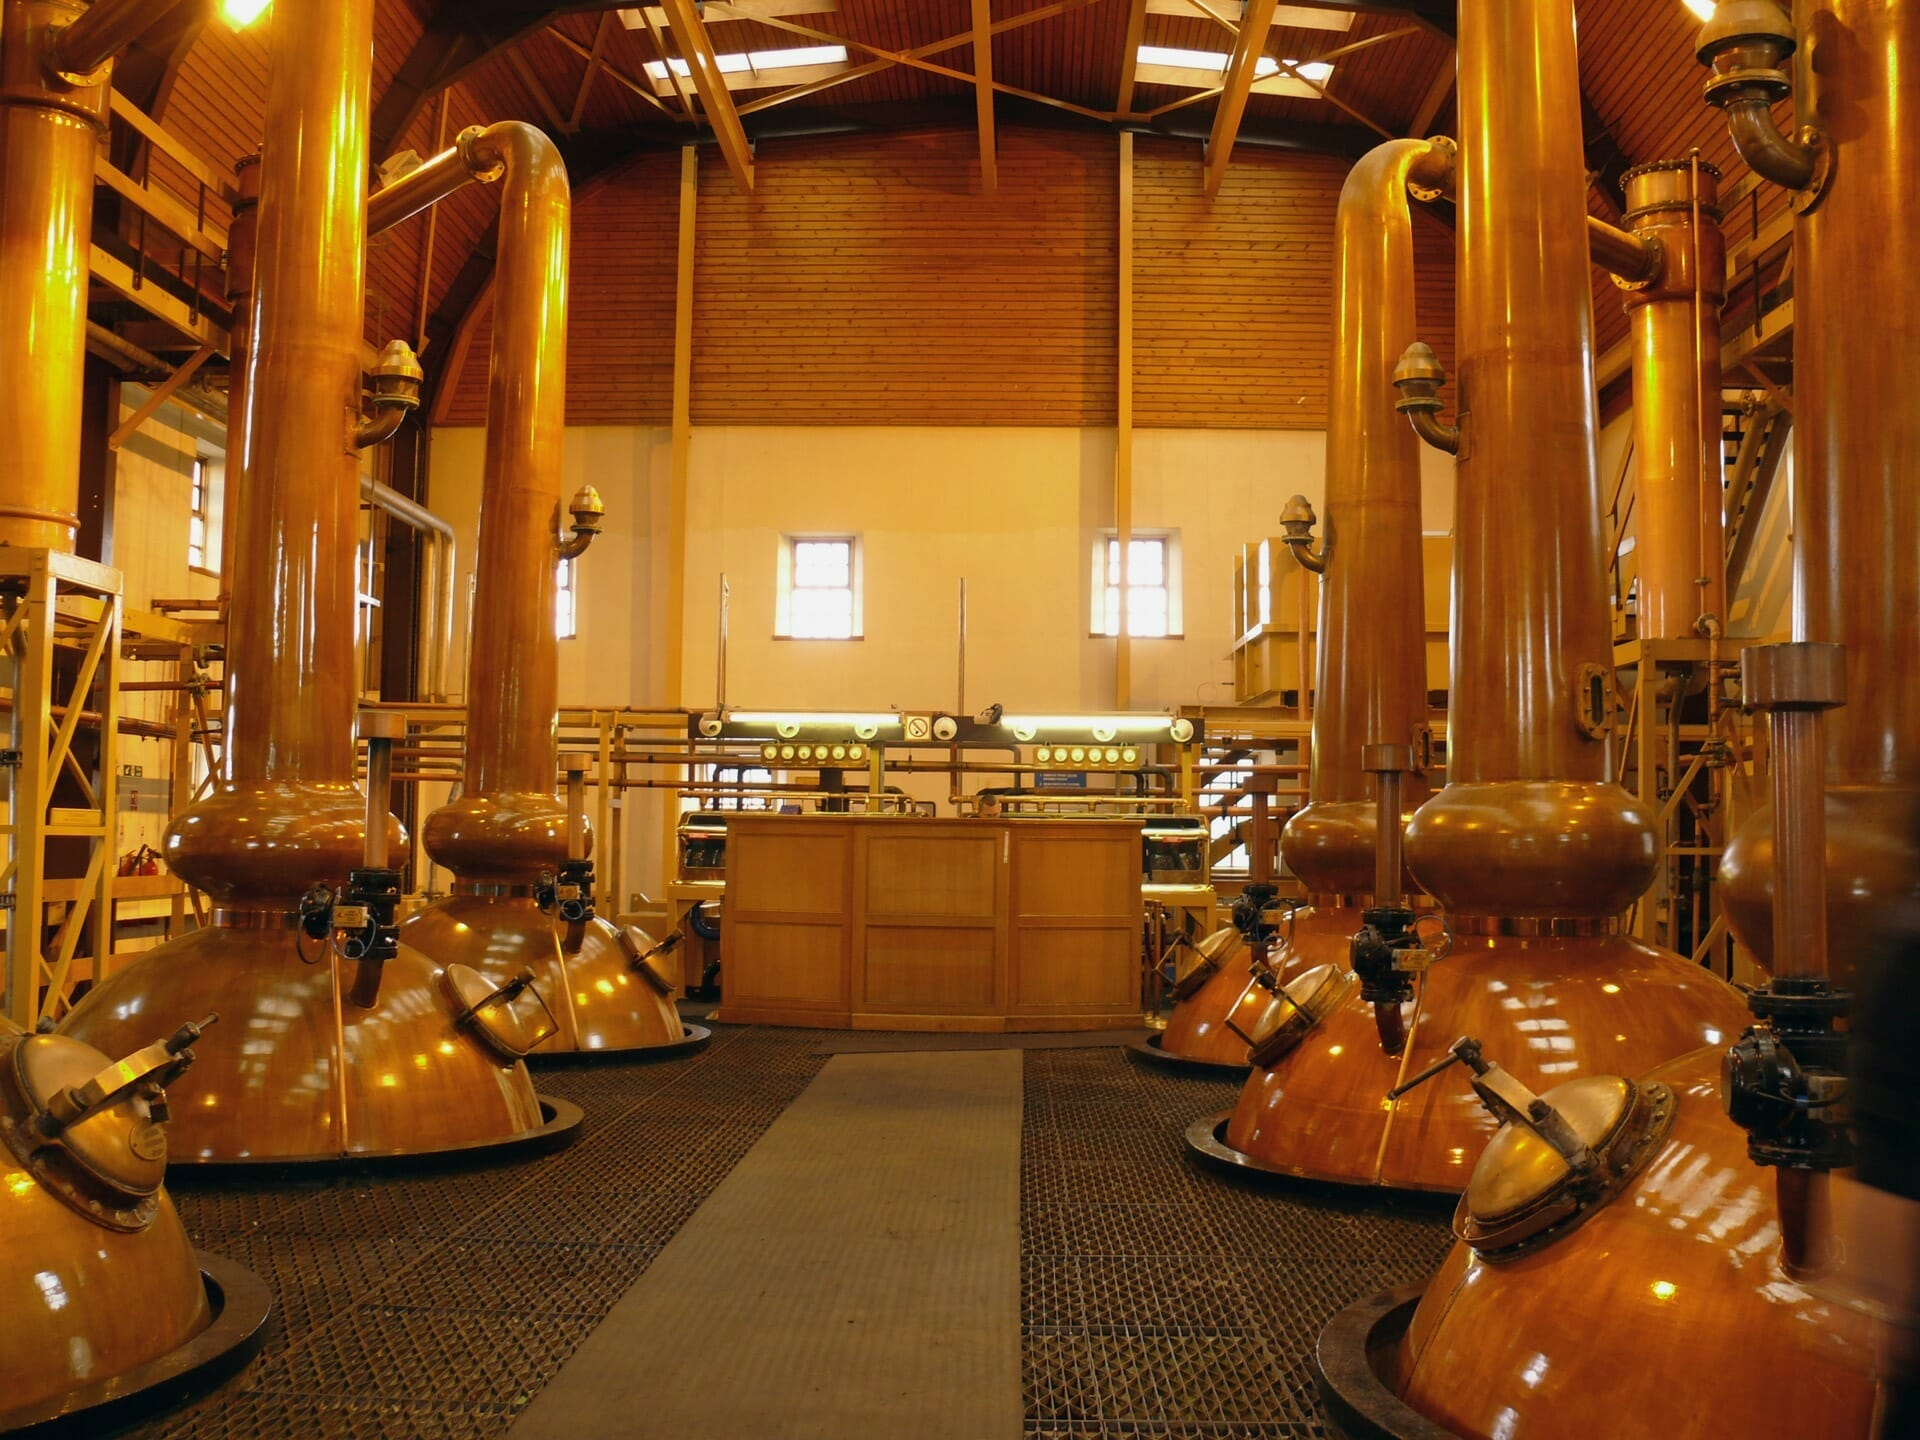 Craigellachie Distillery is in the running Credit: Wikimedia Commons